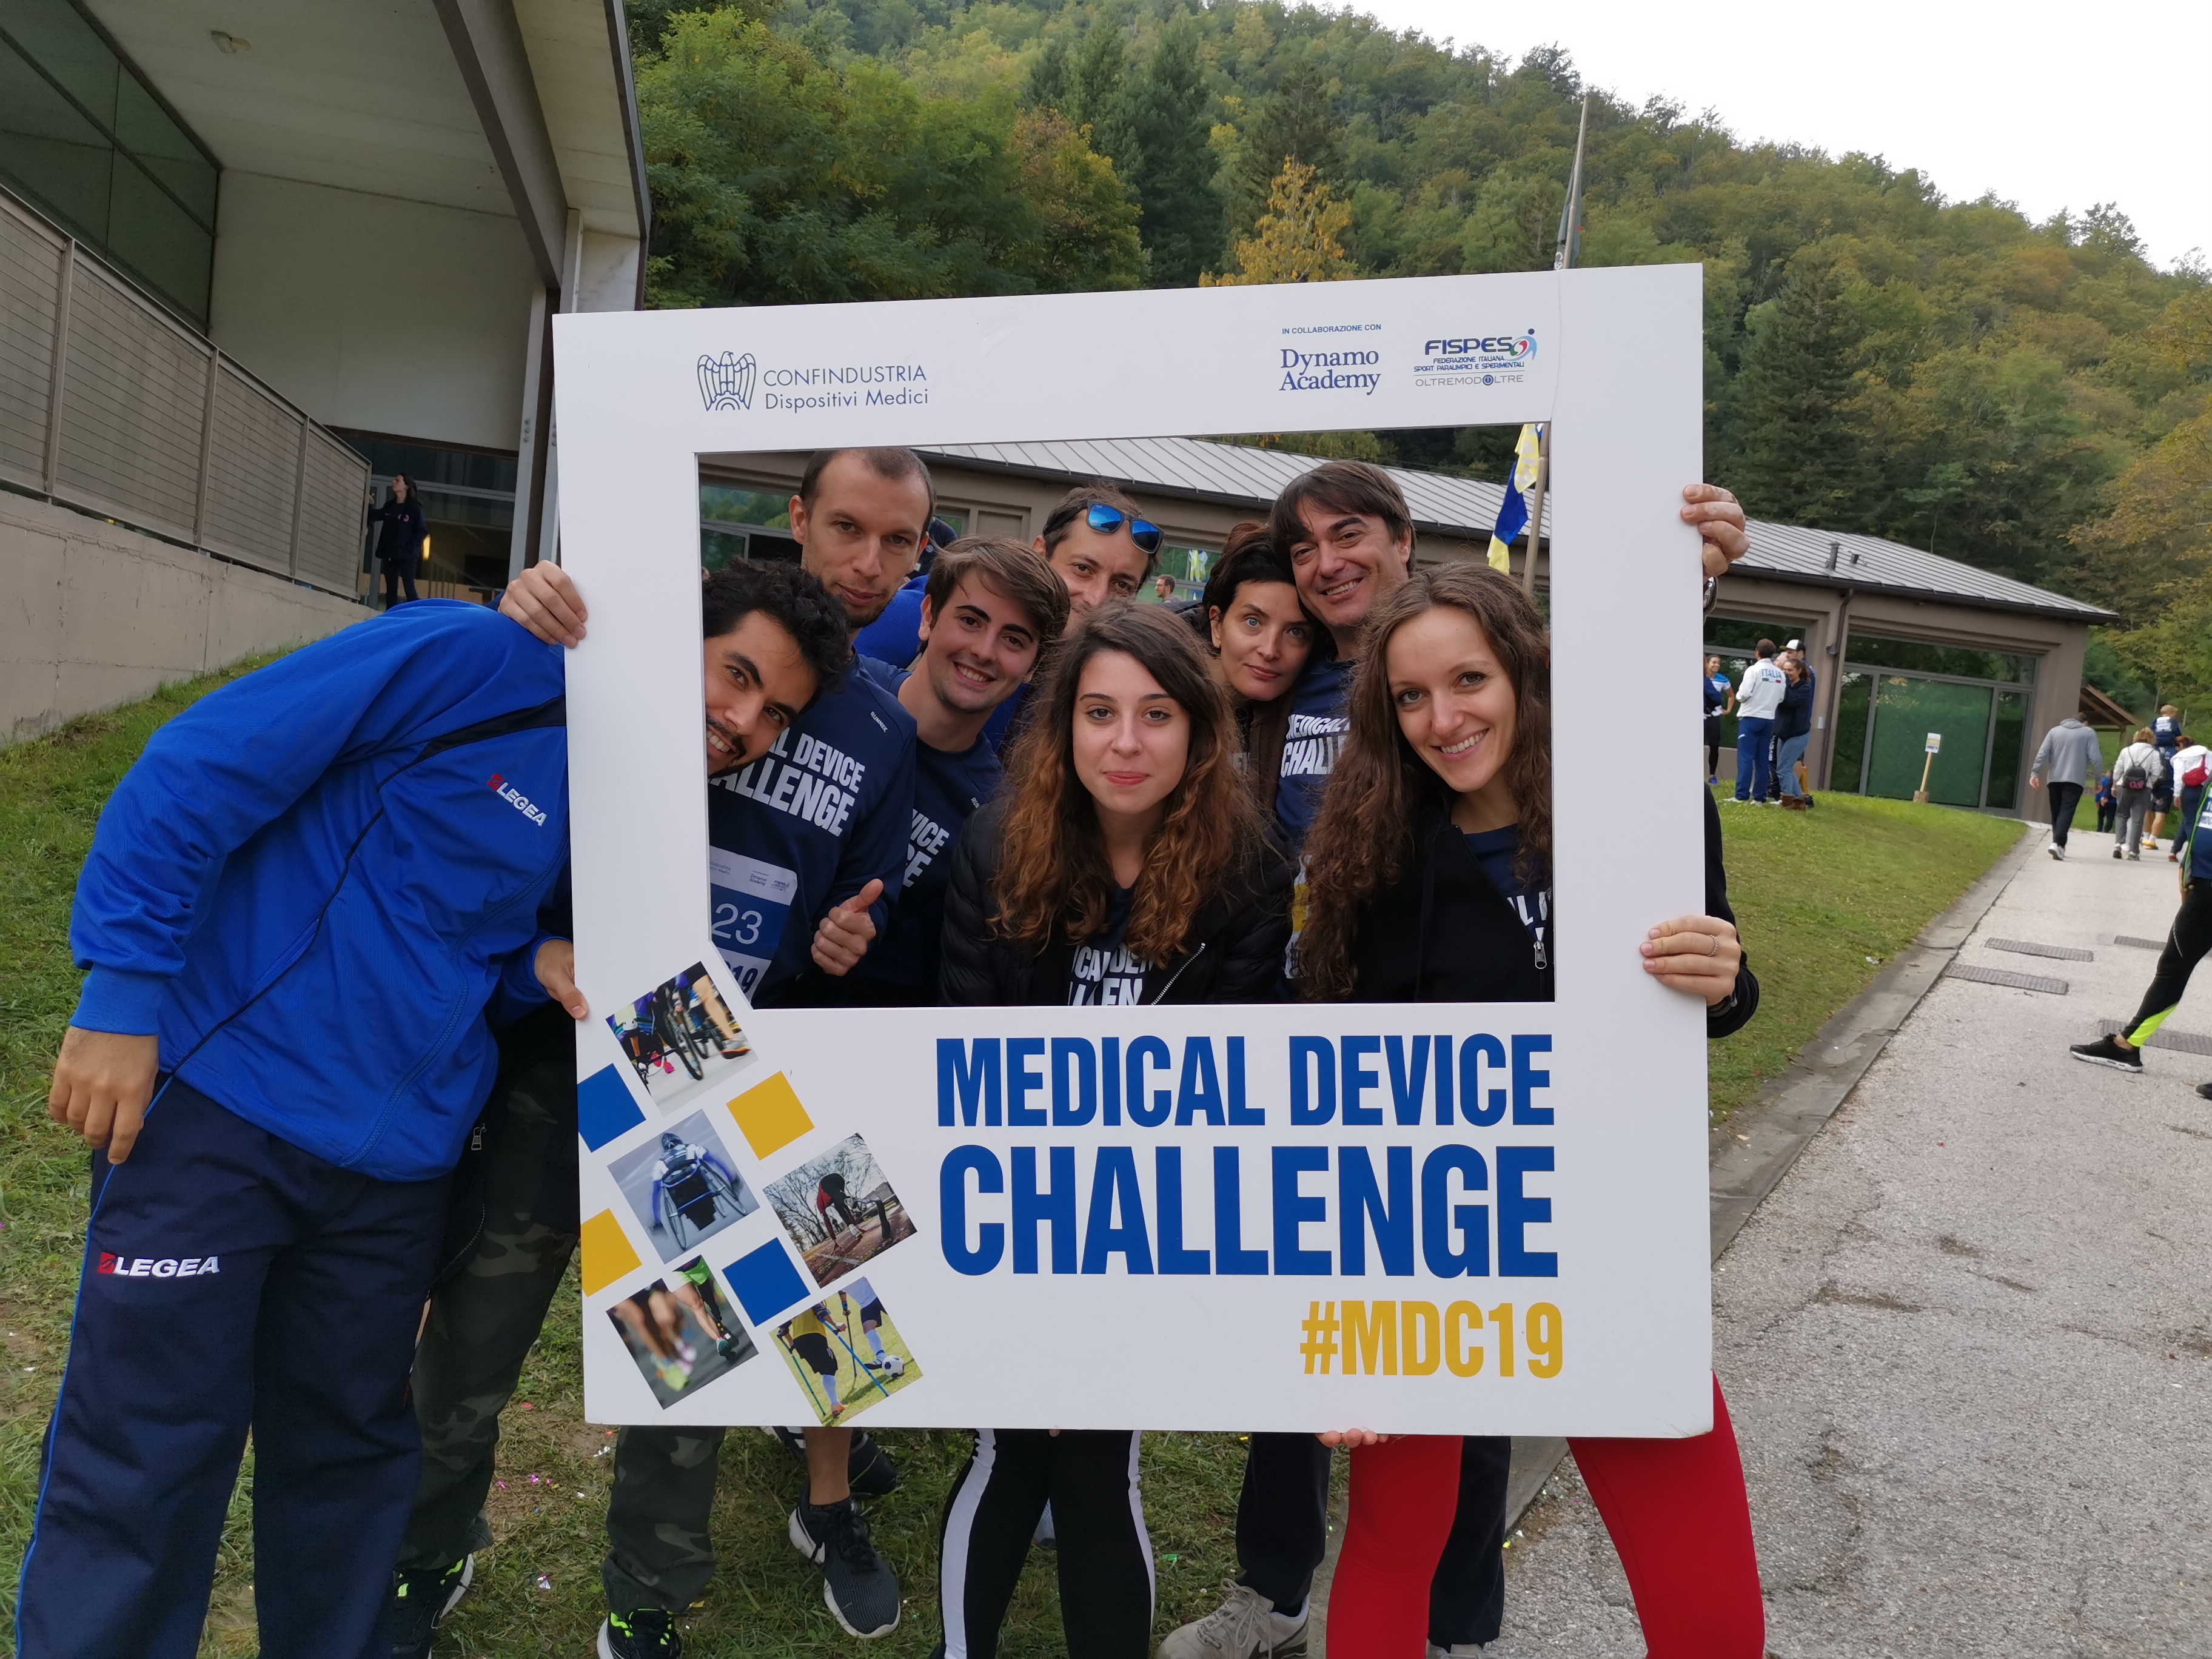 BOMI Group In Support Of Dynamo Camp With Confindustria Dispositivi Medici